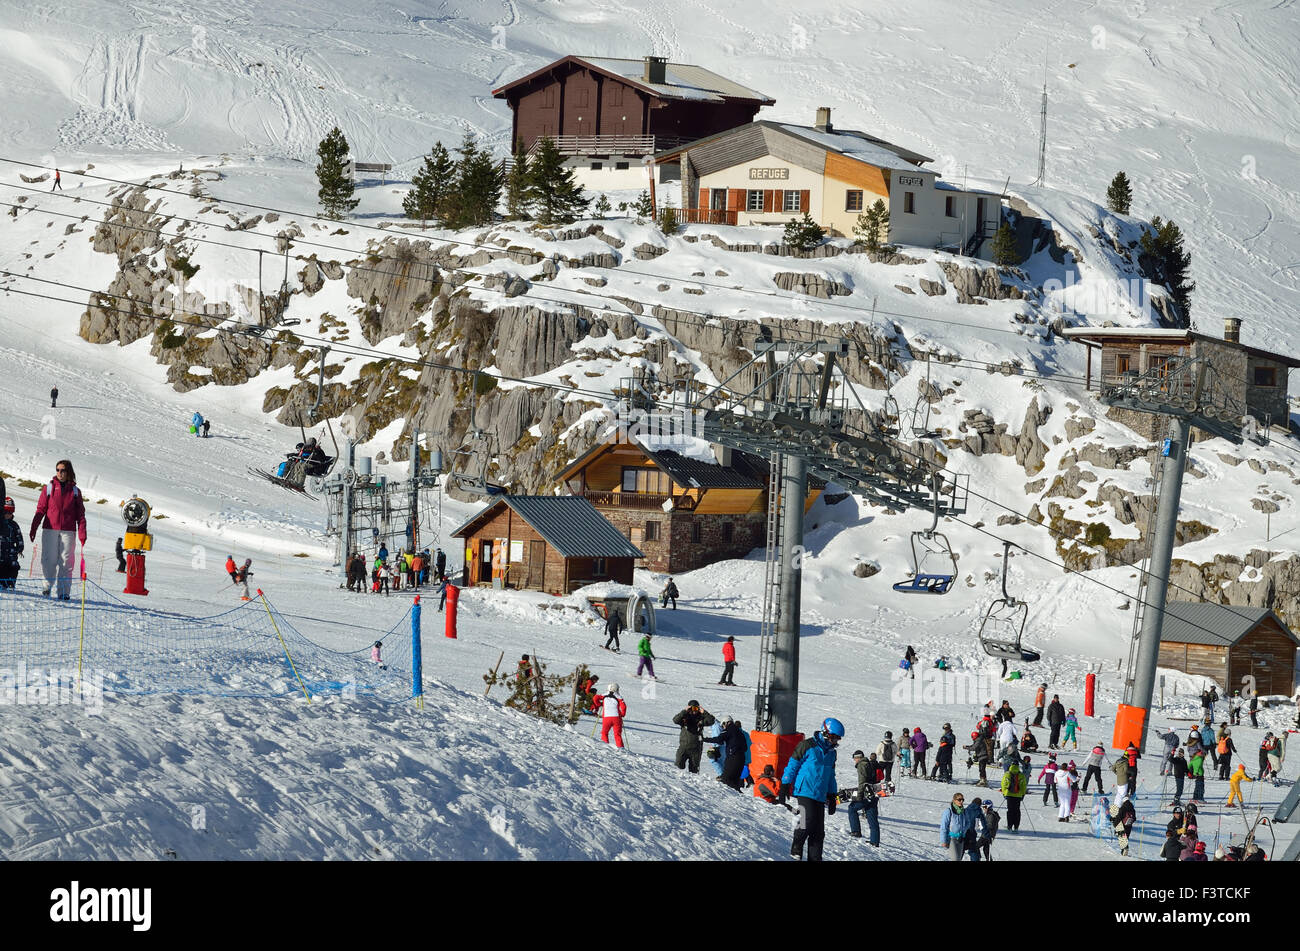 Station de ski française Pierre Saint Martin Photo Stock